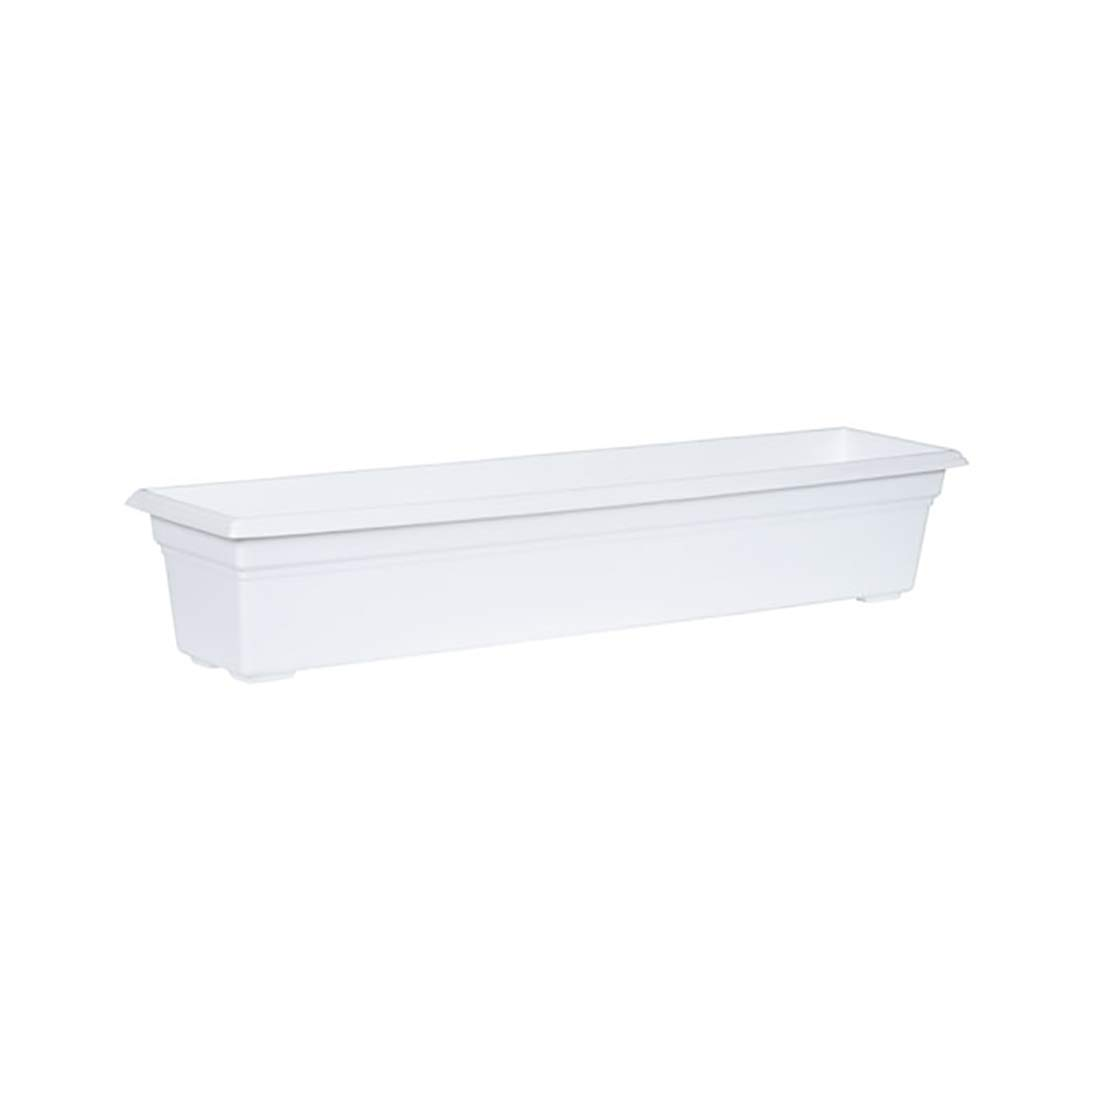 Countryside Flower Box Planter, White, 36-Inch